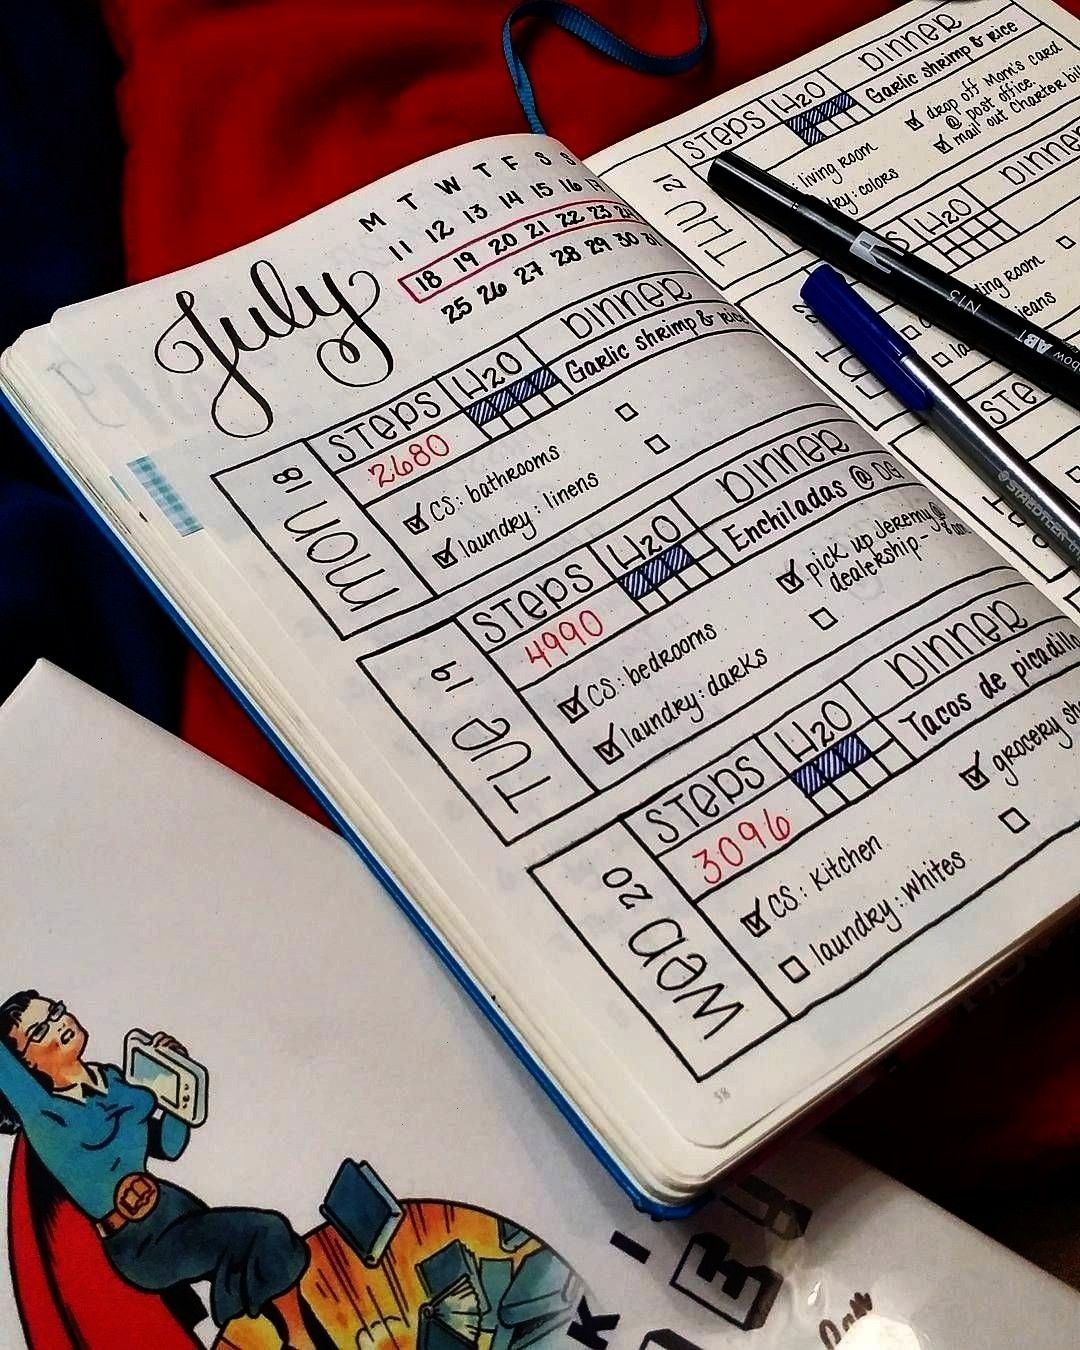 Validate Uplift Empower Validate Mai Thai maithaid BuJo MY Bullet Bullet journal inspiration including calendar section water tracker step tracker meal planner  could be...